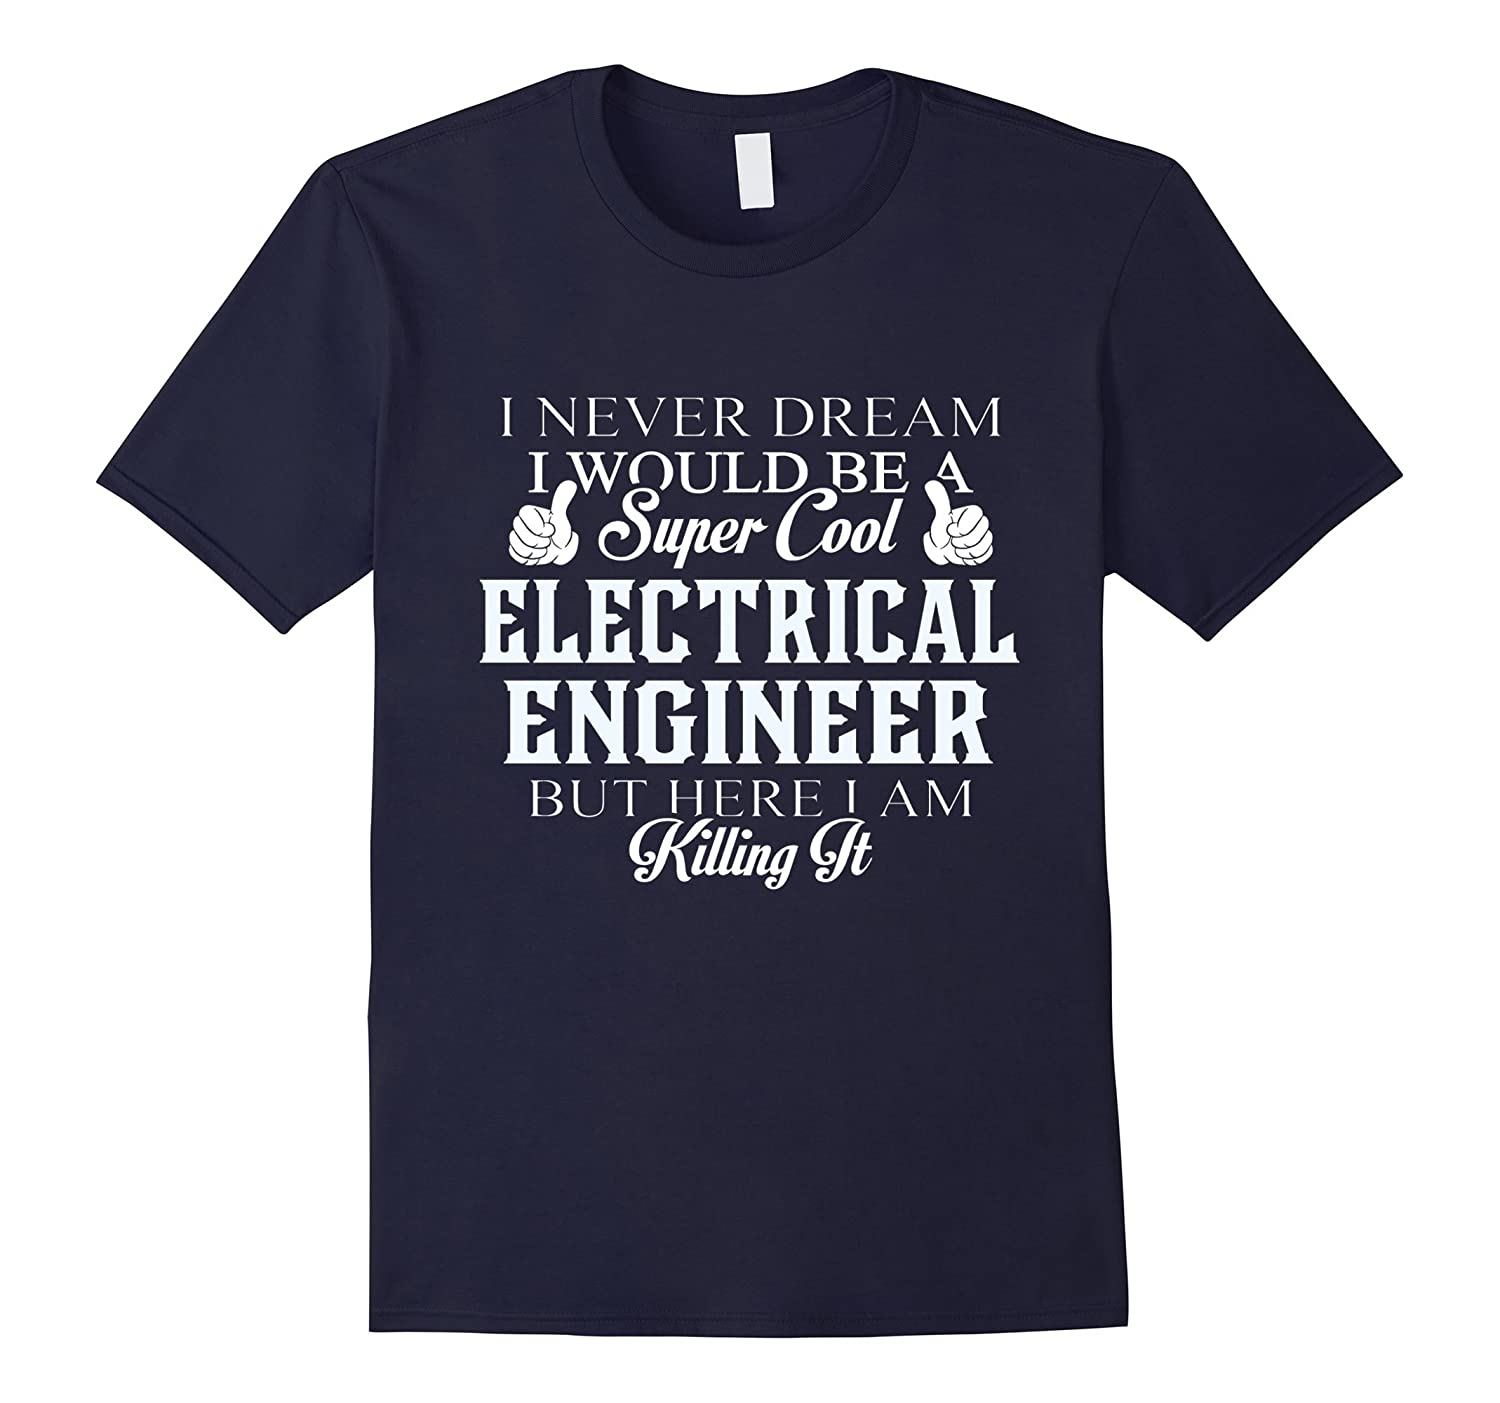 Dreamed would be super cool Electrical engineer killing it-Vaci